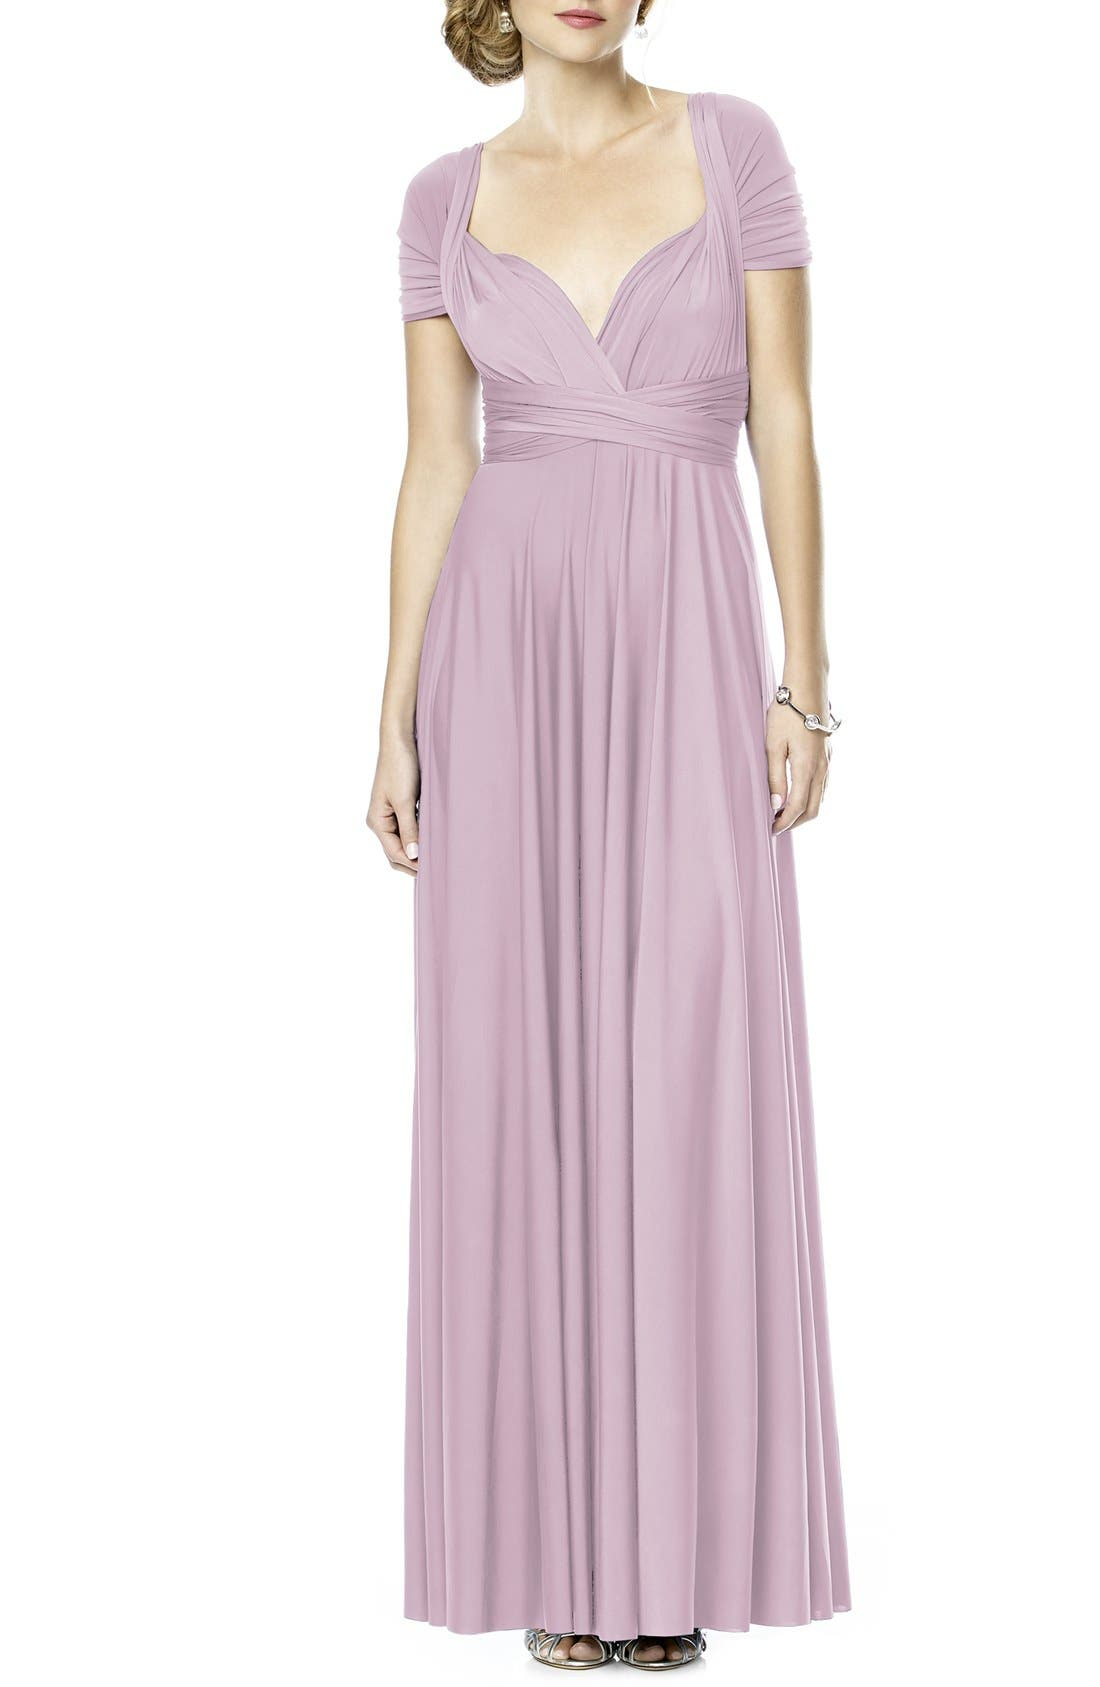 Alternate Image 1 Selected - Dessy Collection Convertible Wrap Tie Surplice Jersey Gown